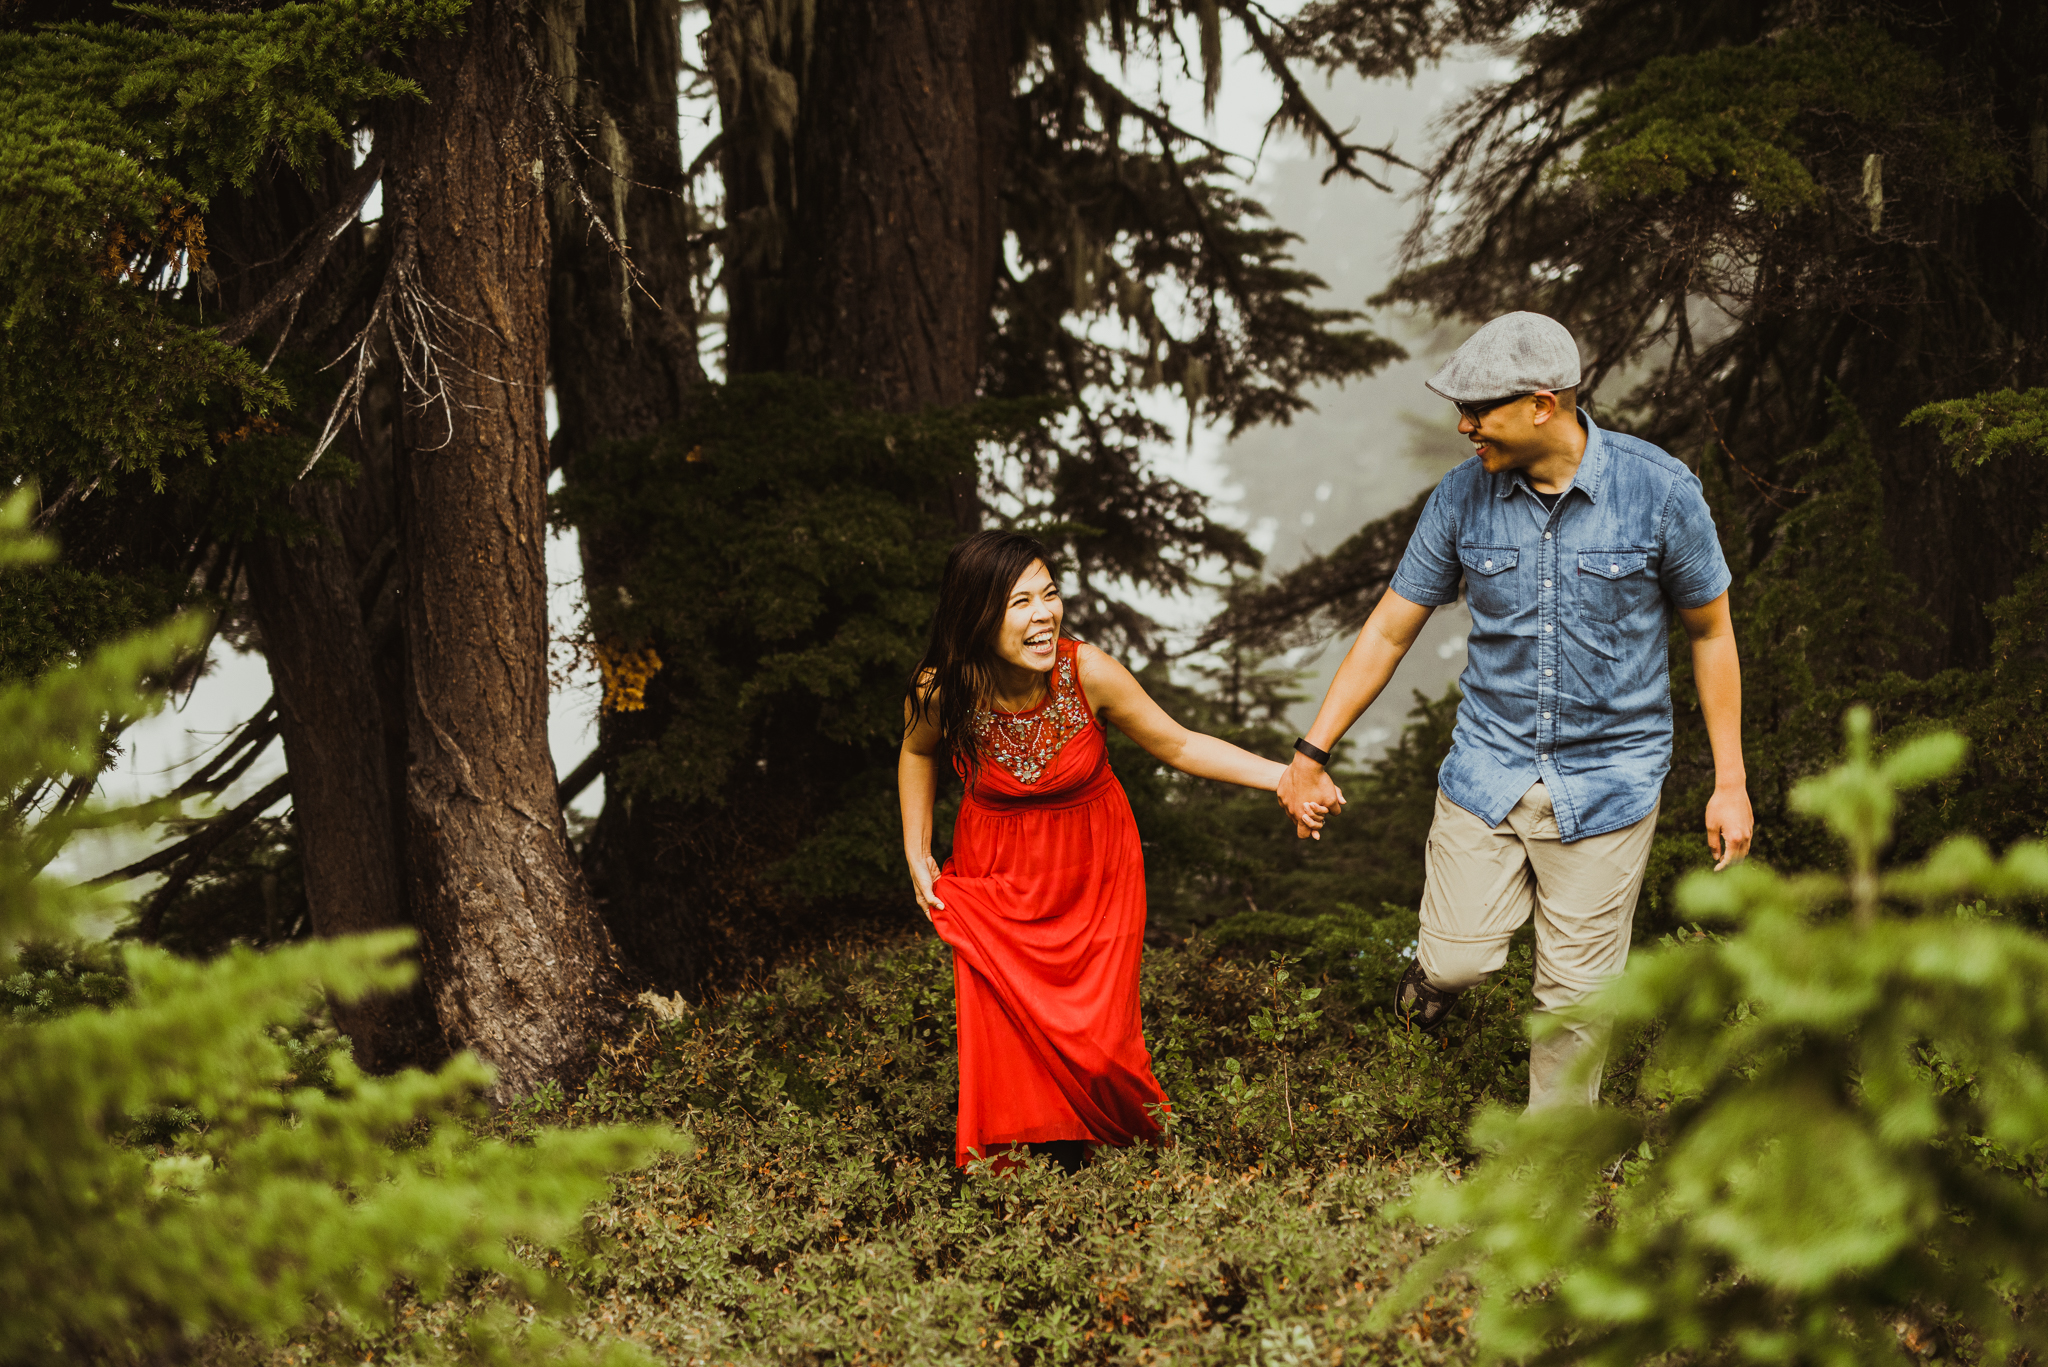 ©Isaiah-&-Taylor-Photography---Hidden-Lake-Cascade-Mountains-Engagement,-Washington-098.jpg